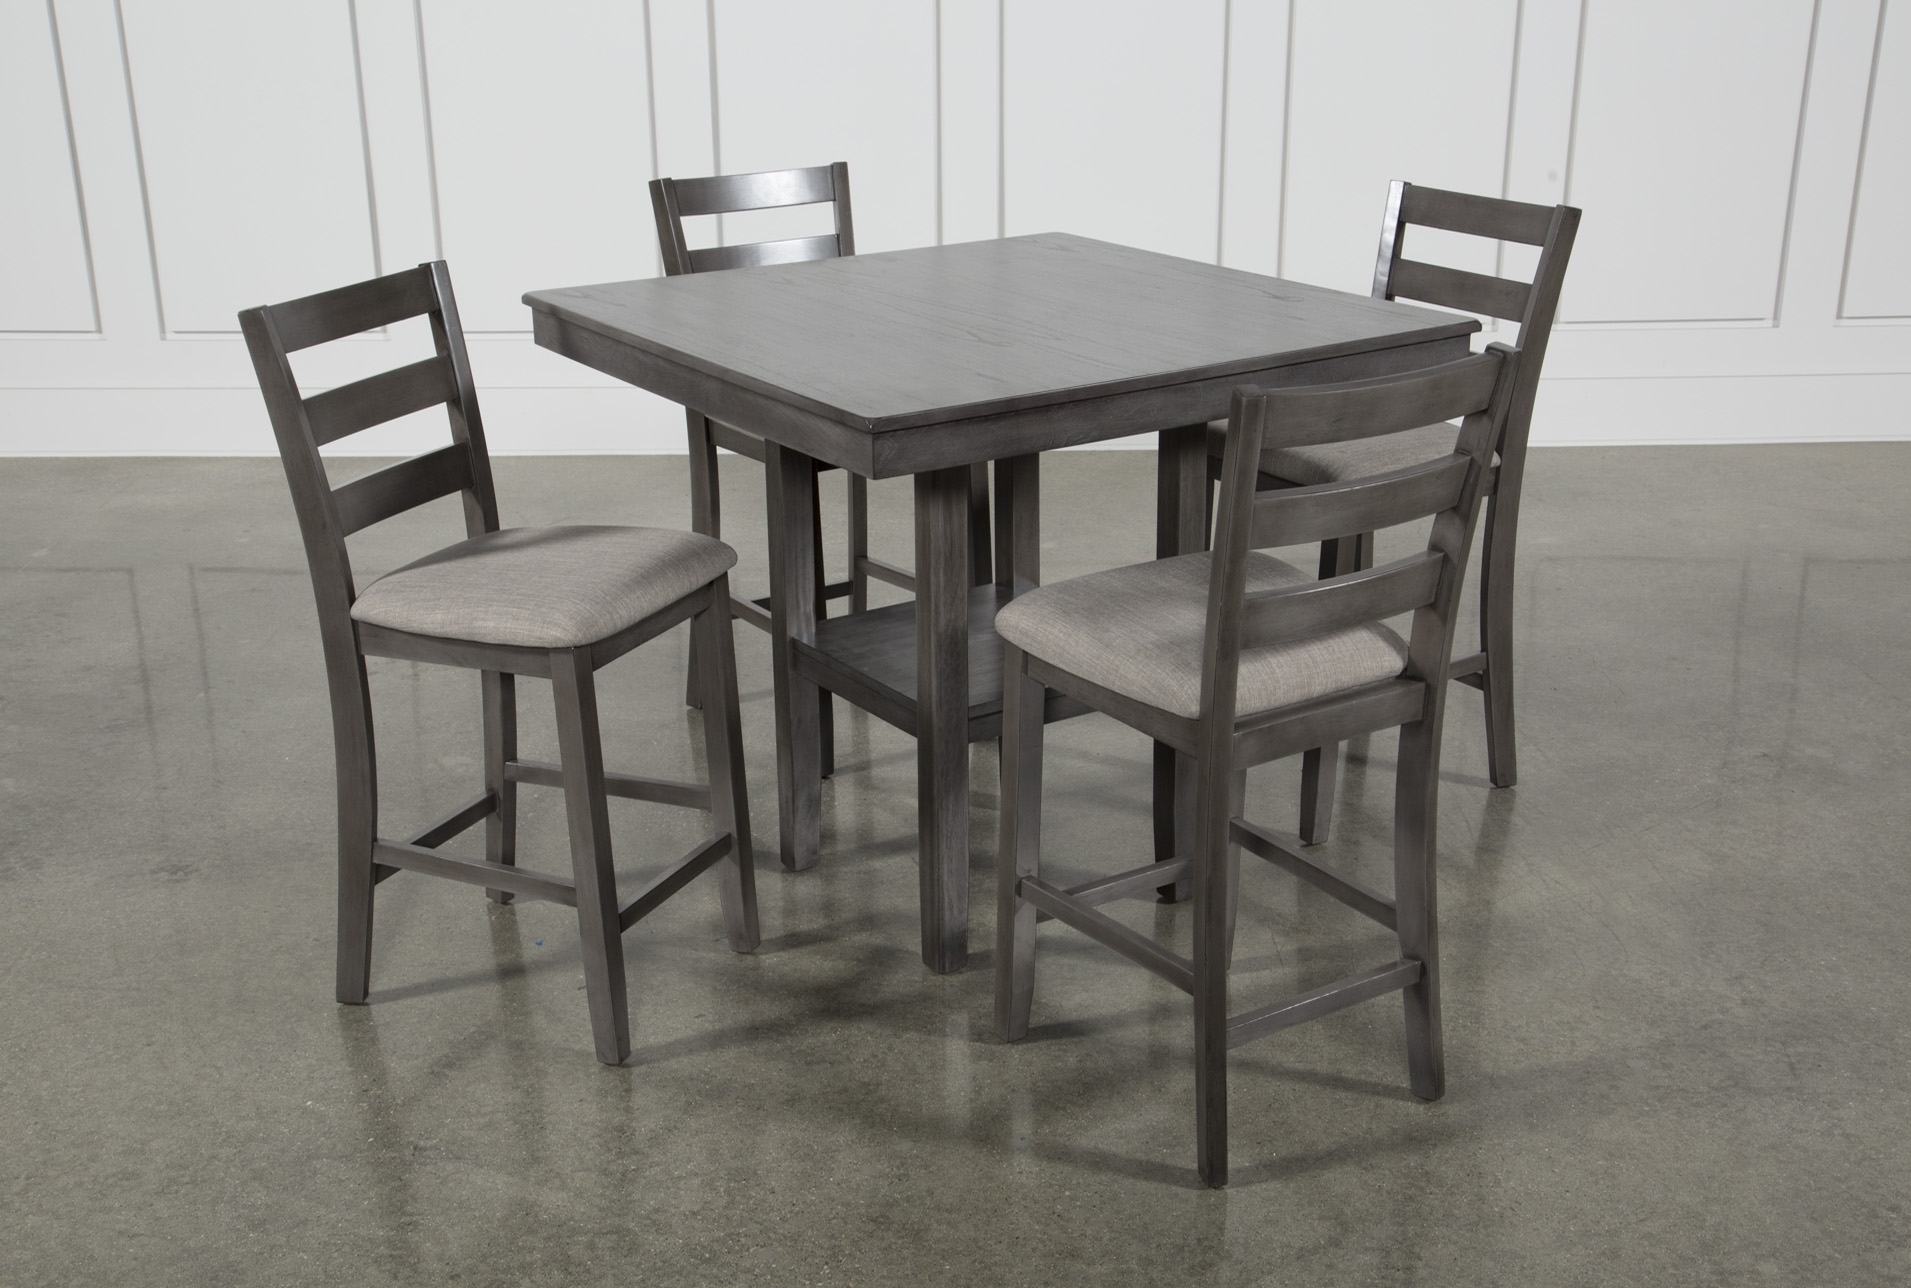 Jameson Grey 5 Piece Counter Set | Products | Pinterest | Products Pertaining To Latest Jameson Grey 5 Piece Counter Sets (View 2 of 20)